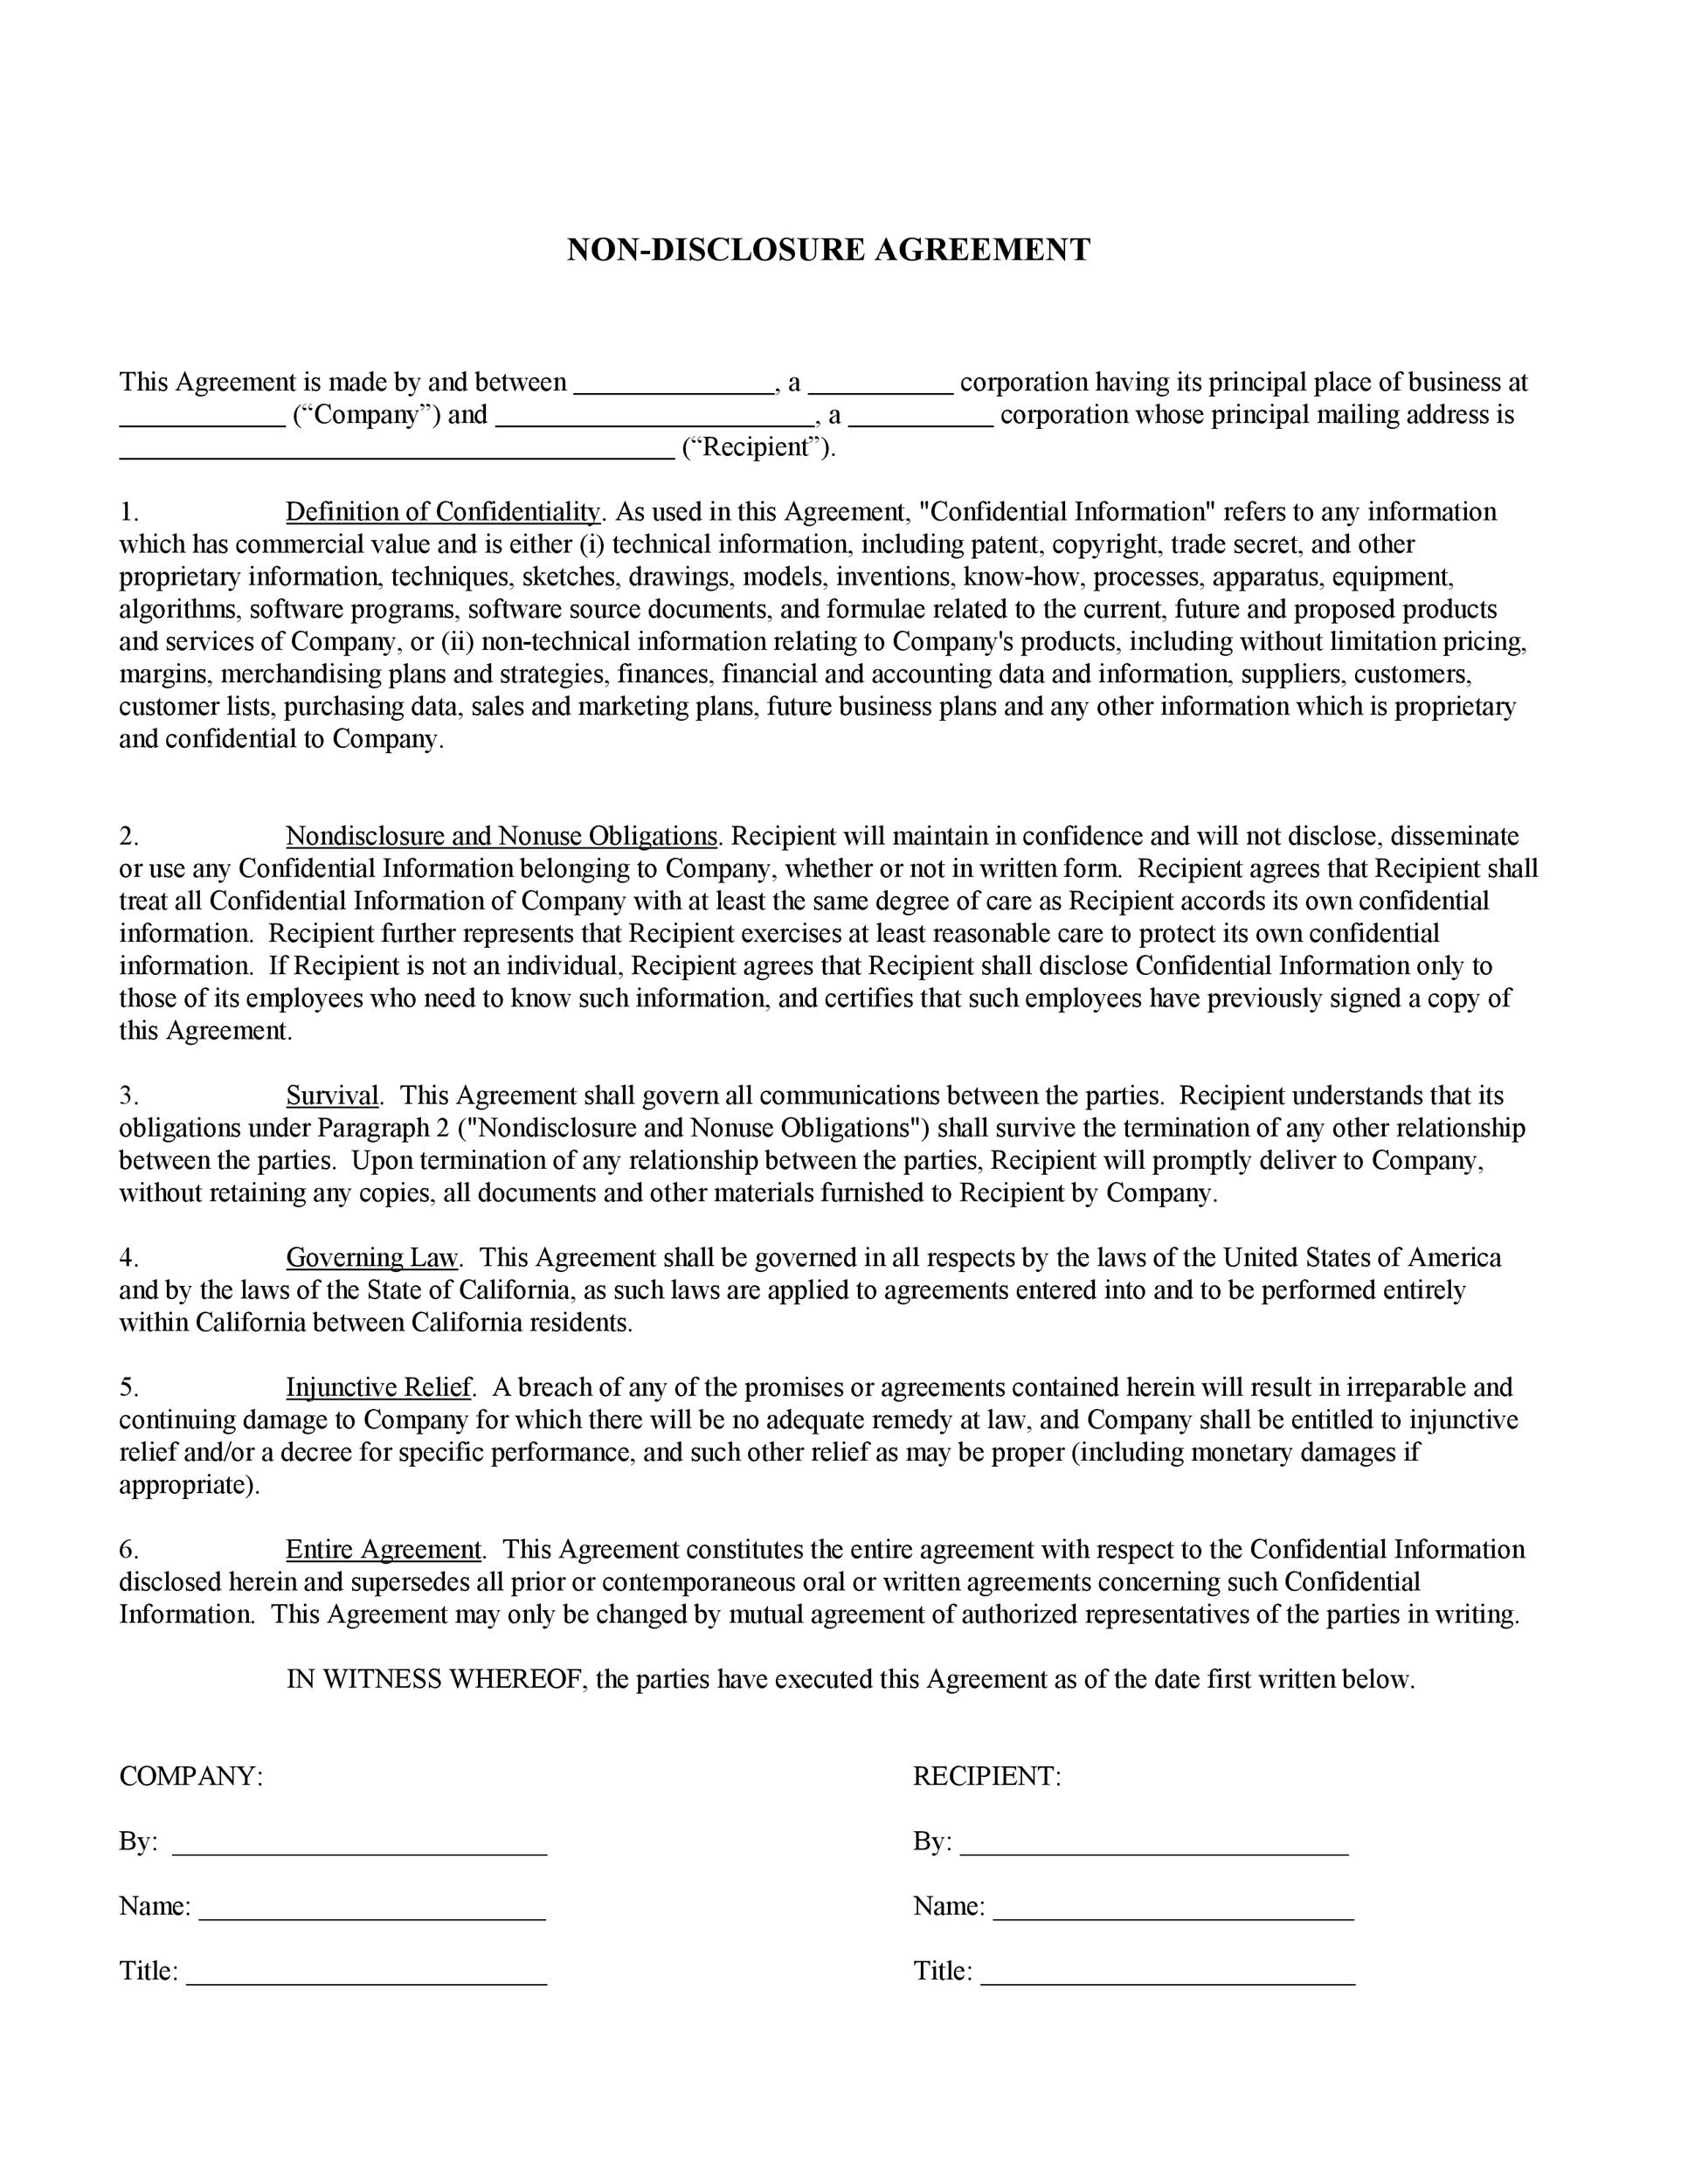 40 non disclosure agreement templates samples forms for Party wall agreement